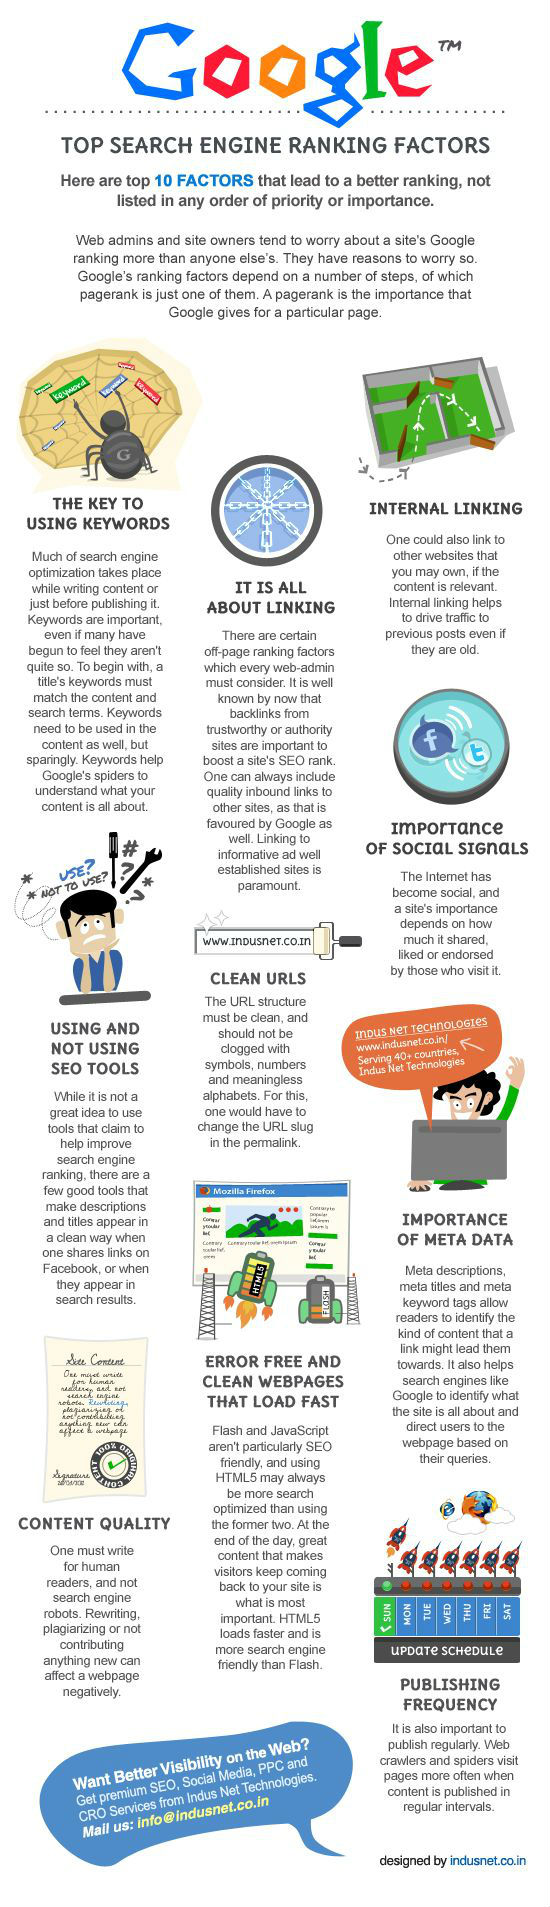 Google Ranking Factors [Infographic]